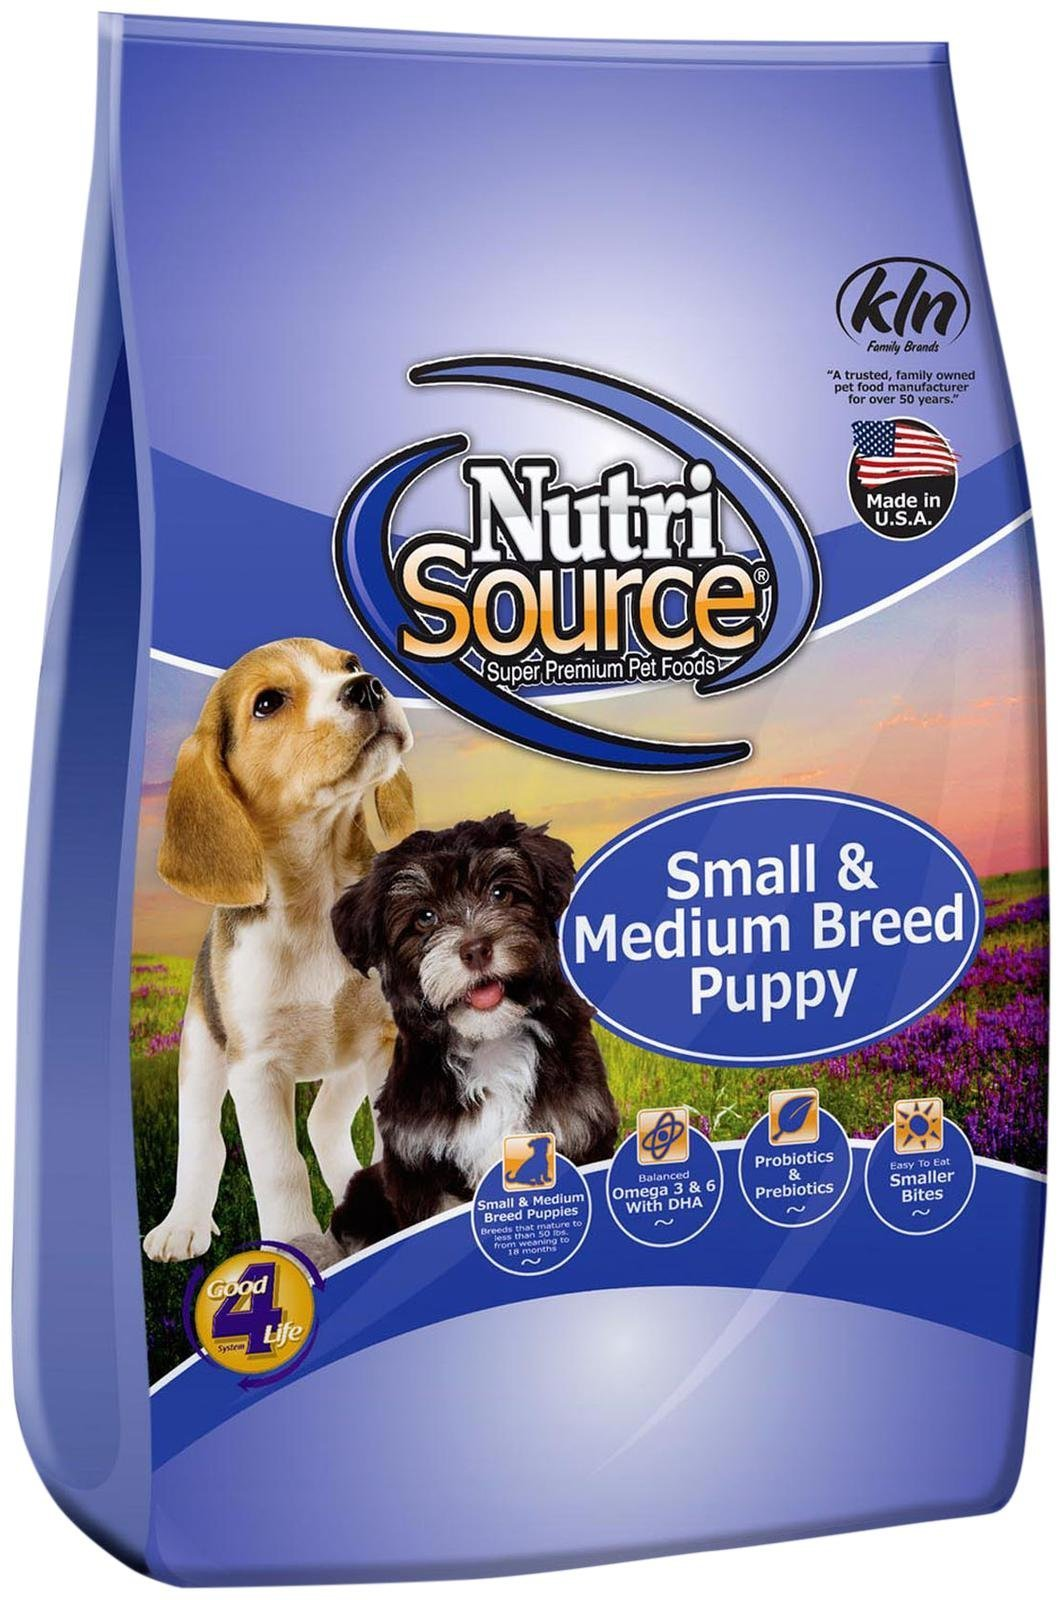 Tuffy's Pet Food 131508 Nutri Small/Medium Breed Puppy Food, 35-Pound by Nutri Source (Image #1)